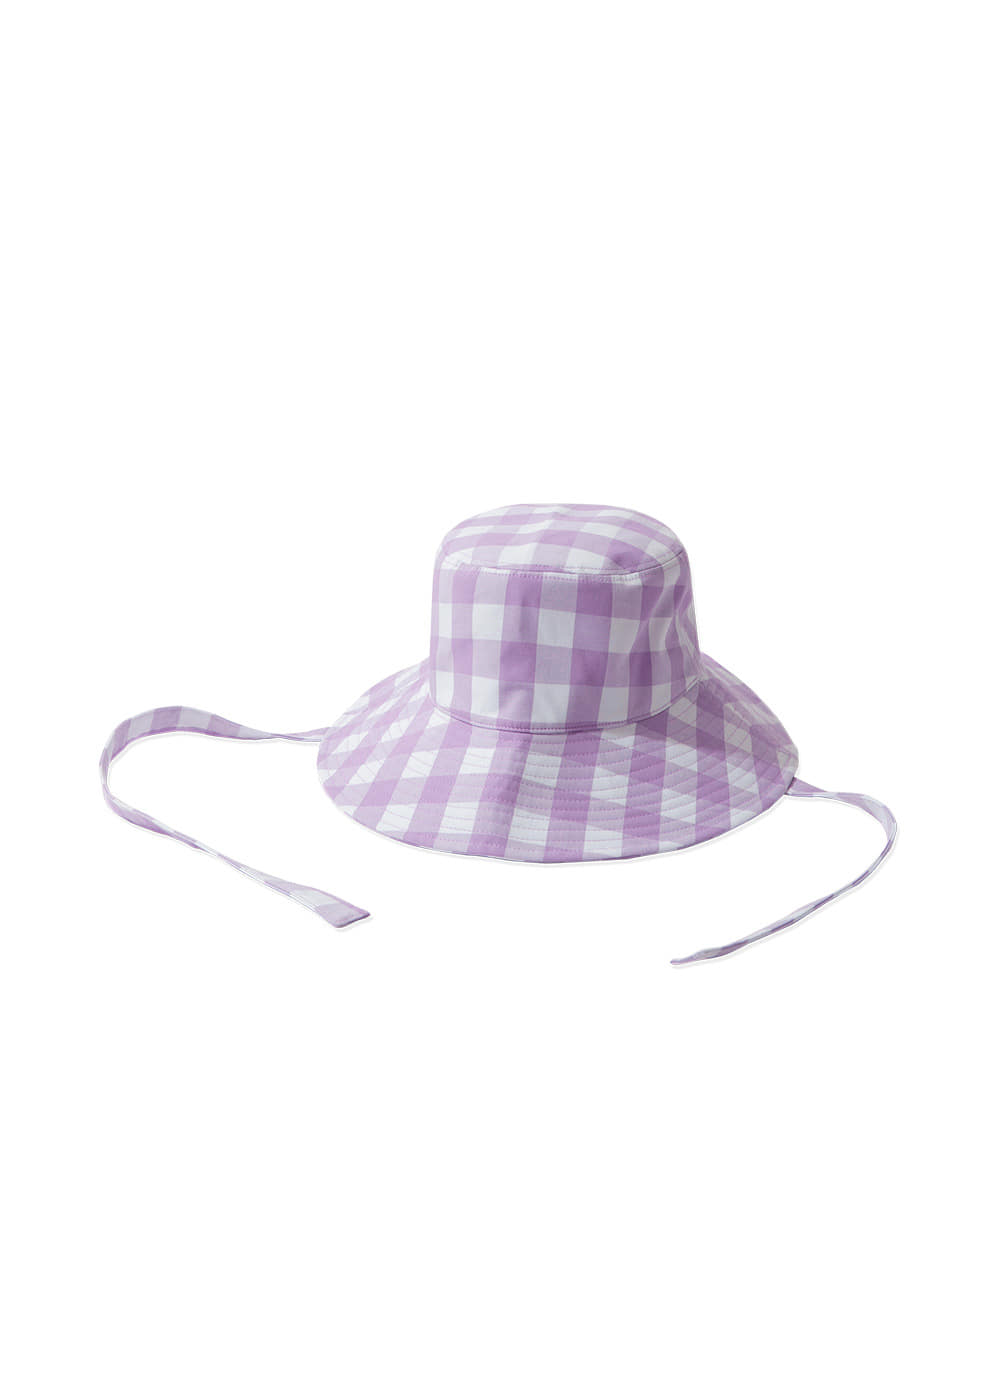 KANCO CHECK BUCKET HAT lavender